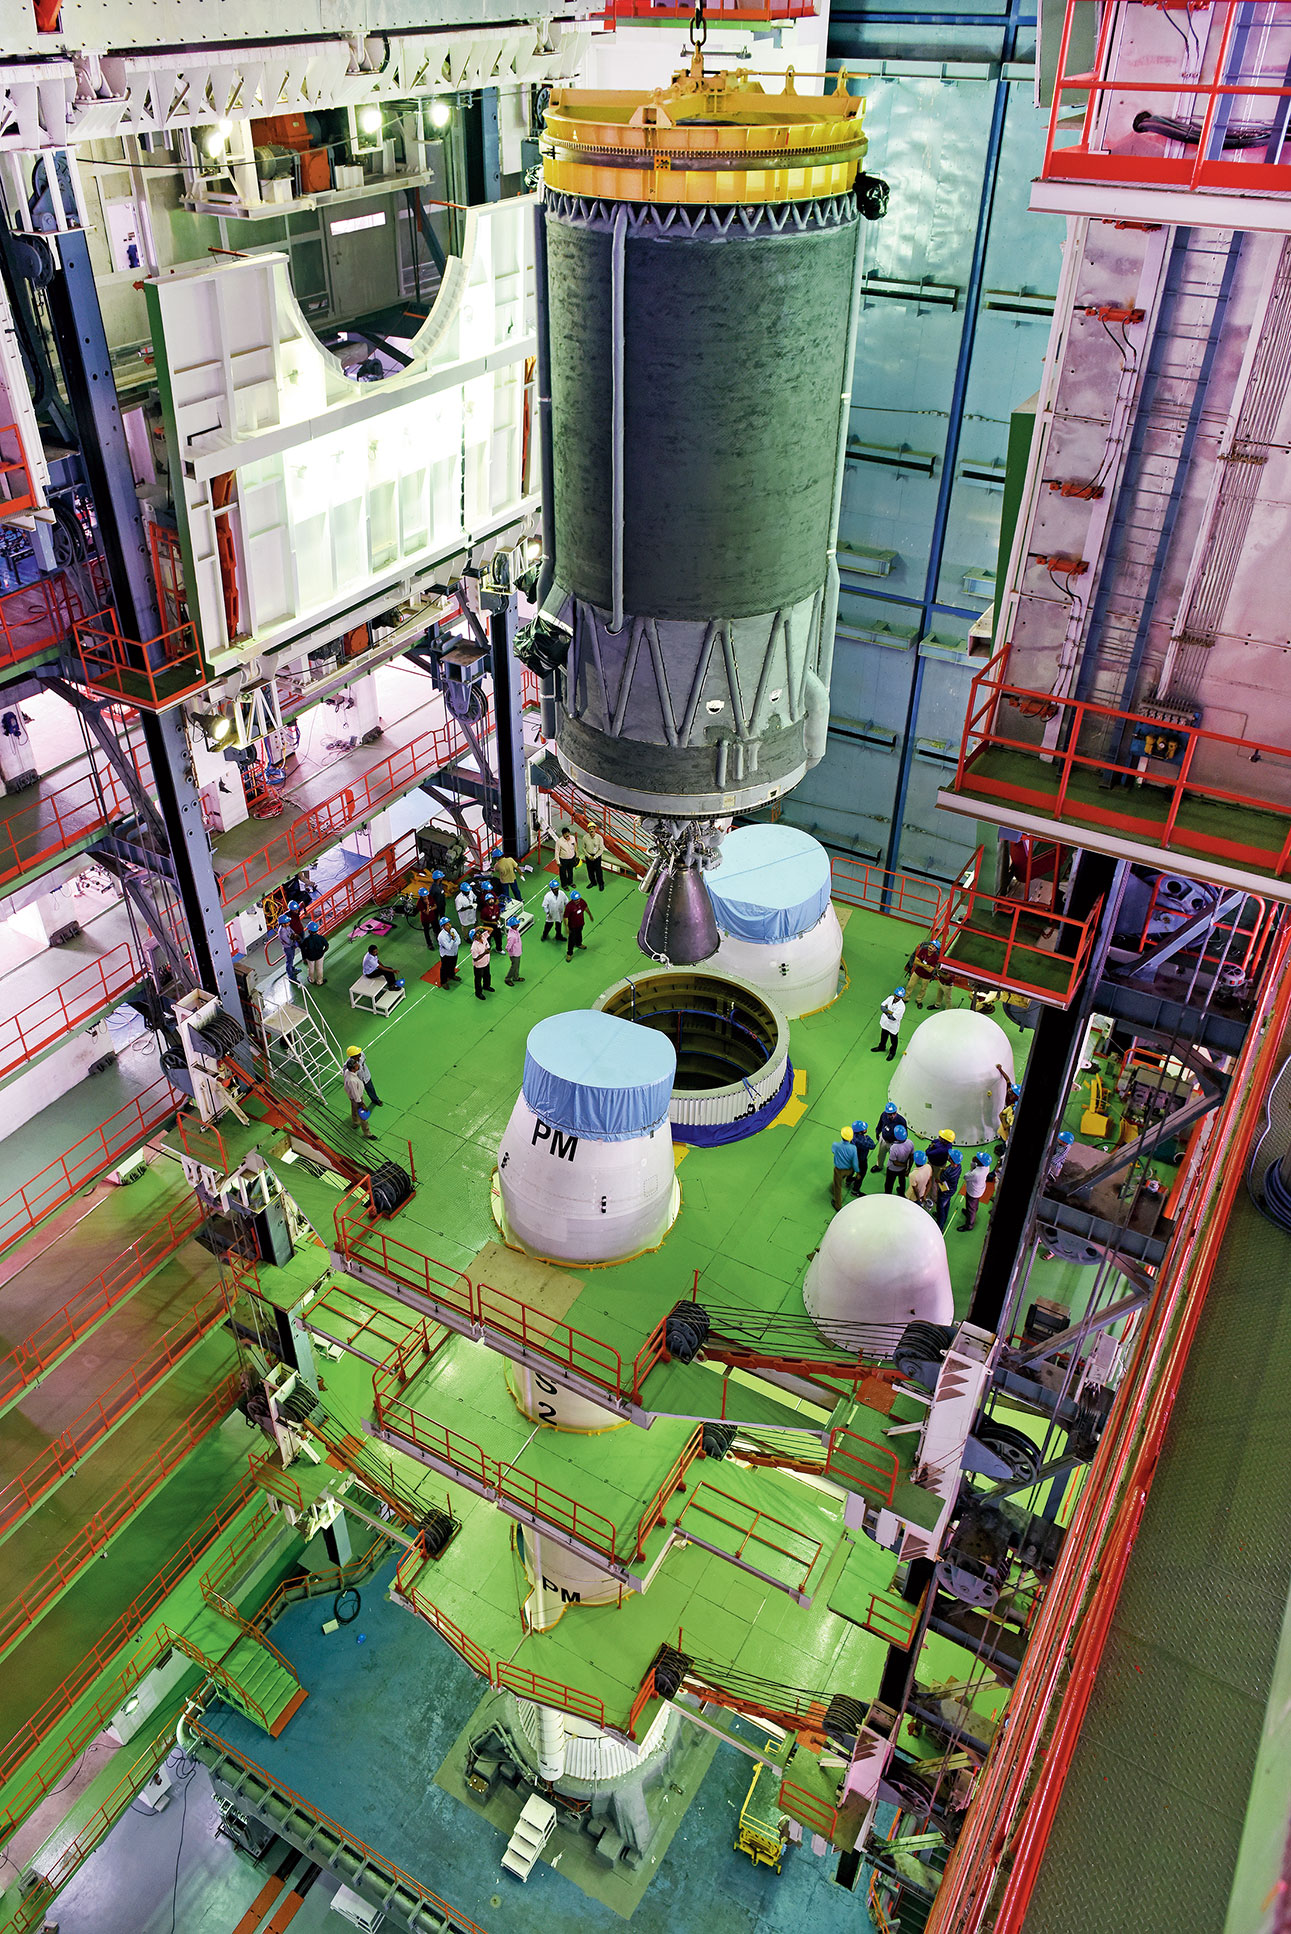 The cryogenic engine being integrated into the GSLV rocket